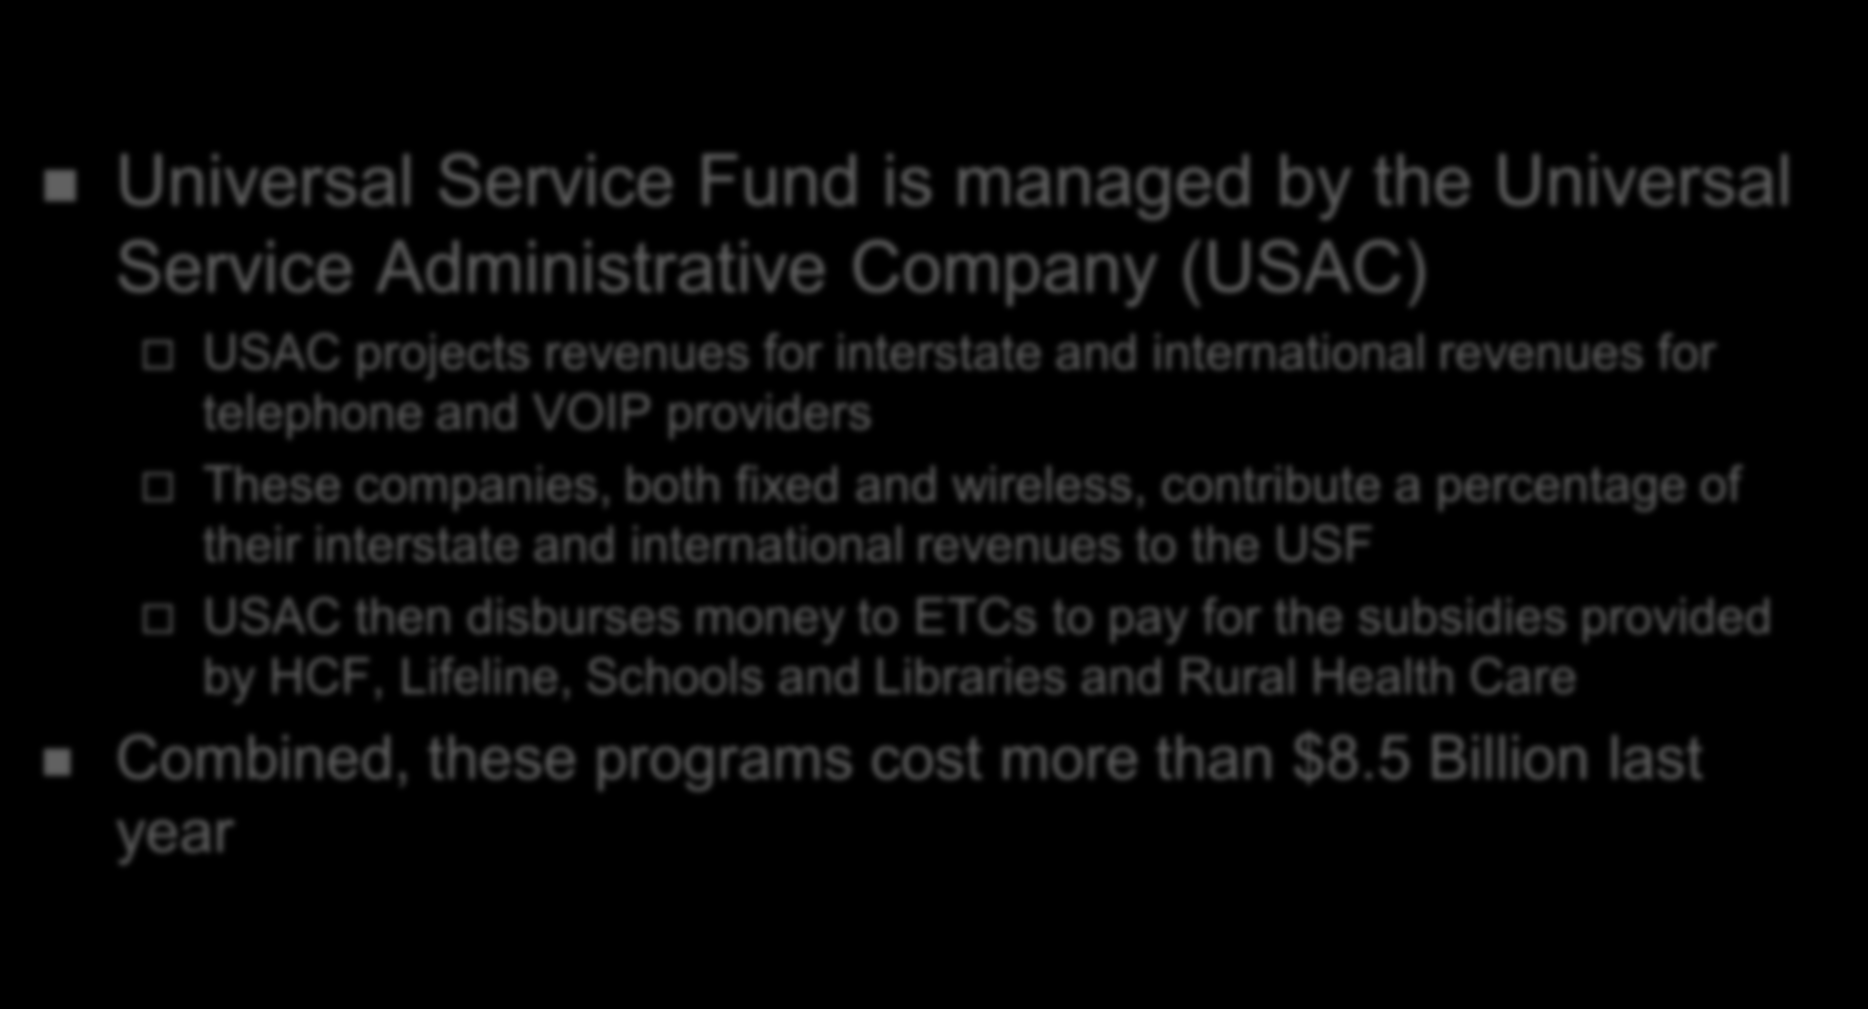 Universal Service in Telecom Act Universal Service Fund is managed by the Universal Service Administrative Company (USAC) USAC projects revenues for interstate and international revenues for